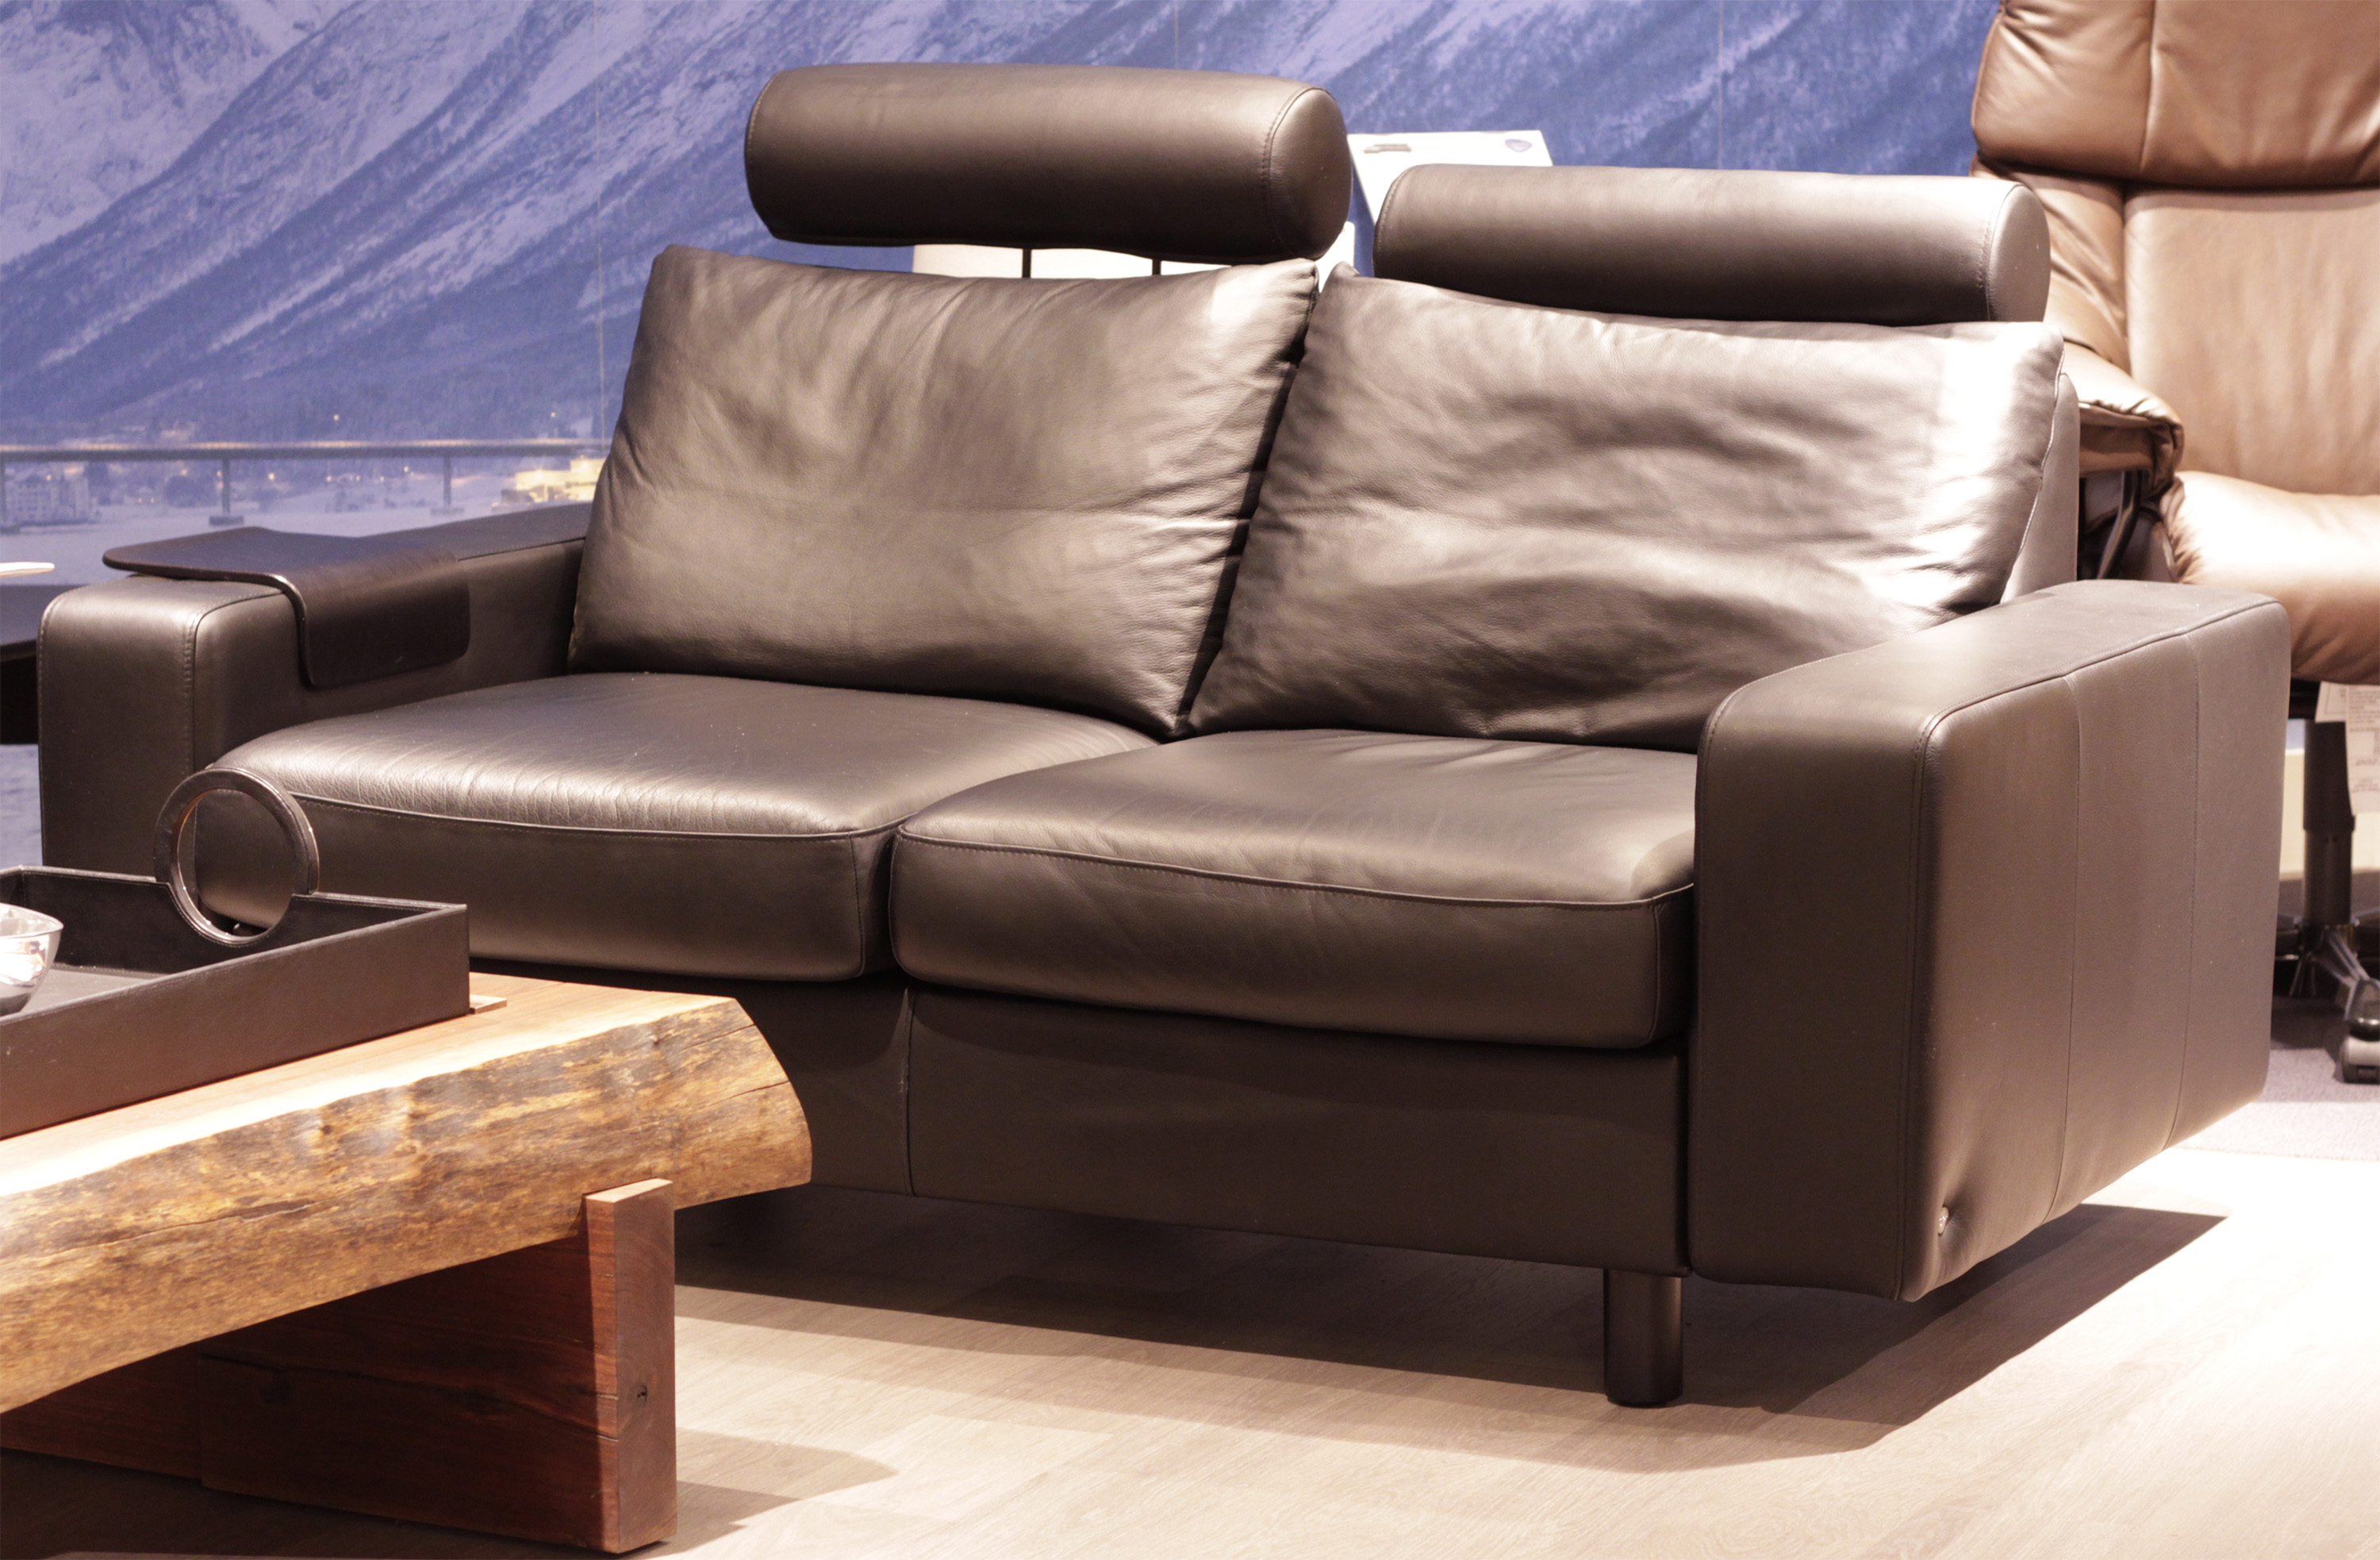 Stressless Sofa E200 Stressless E200 Loveseat Sofa In Paloma Rock Leather By Ekornes